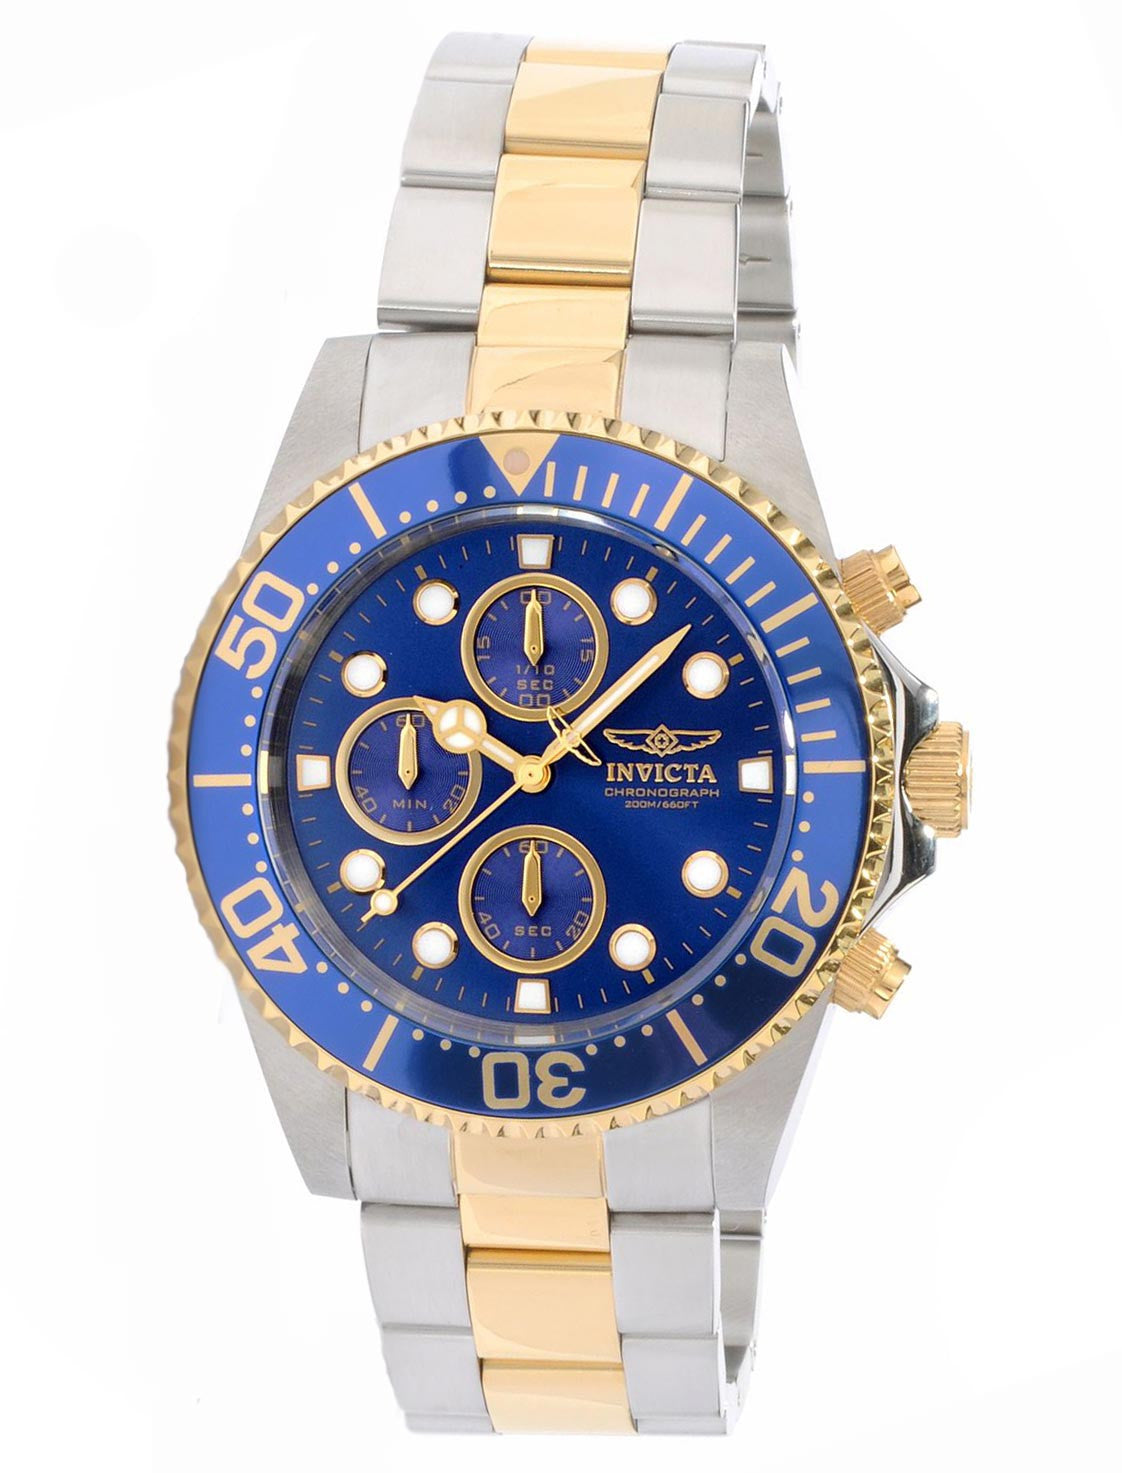 Invicta 1773 Men's Pro Diver Two Tone Blue Dial Coin Edge Bezel Chronograph Watch